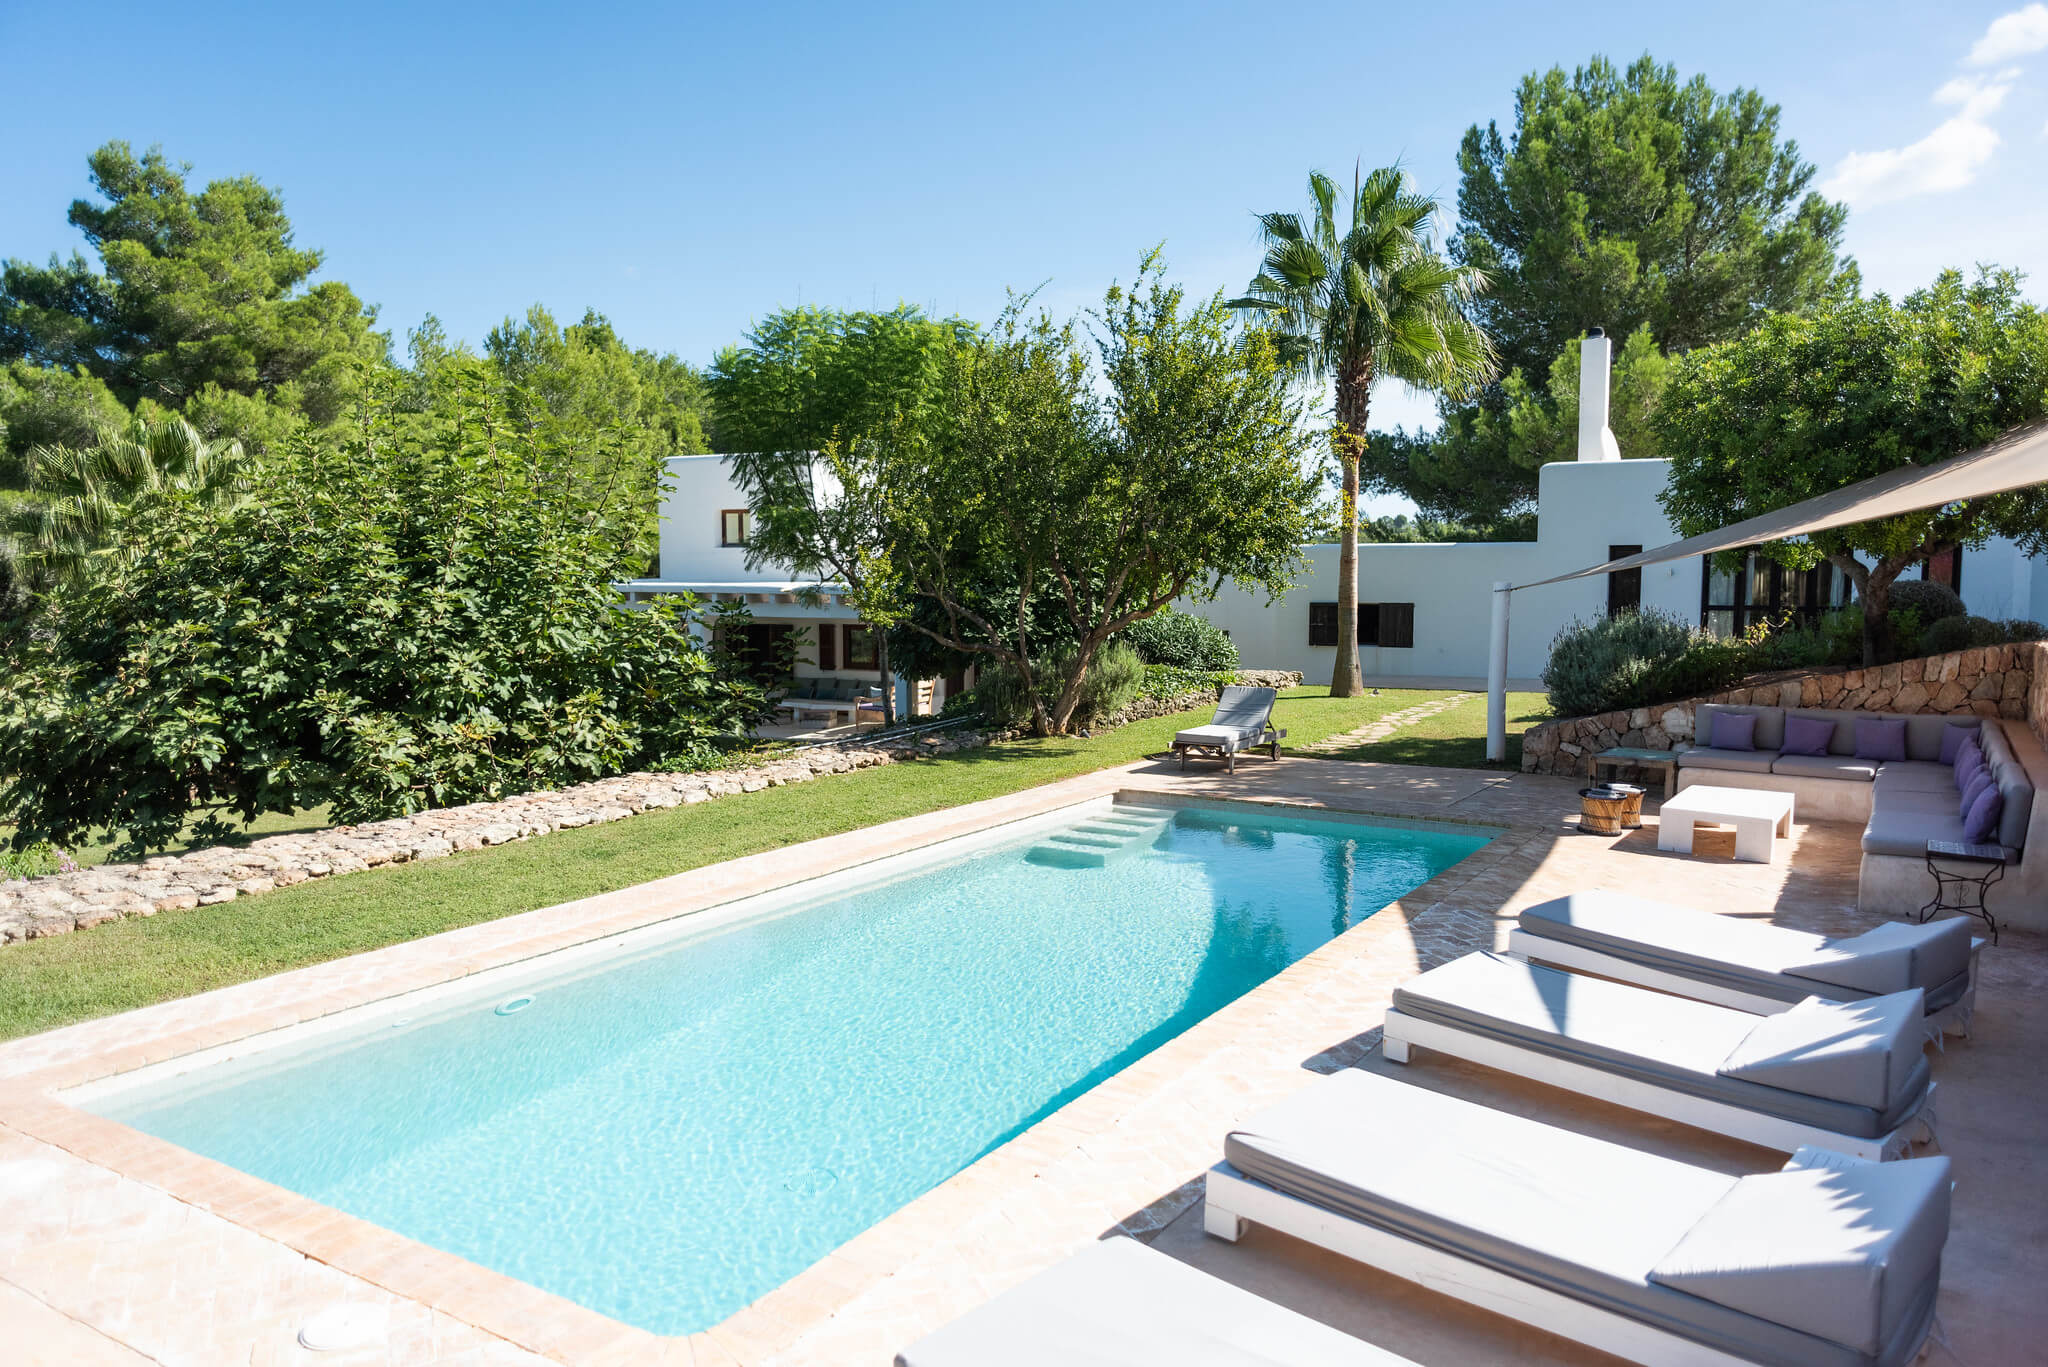 https://www.white-ibiza.com/wp-content/uploads/2020/06/white-ibiza-villas-casa-arabella-exterior-pool2.jpg